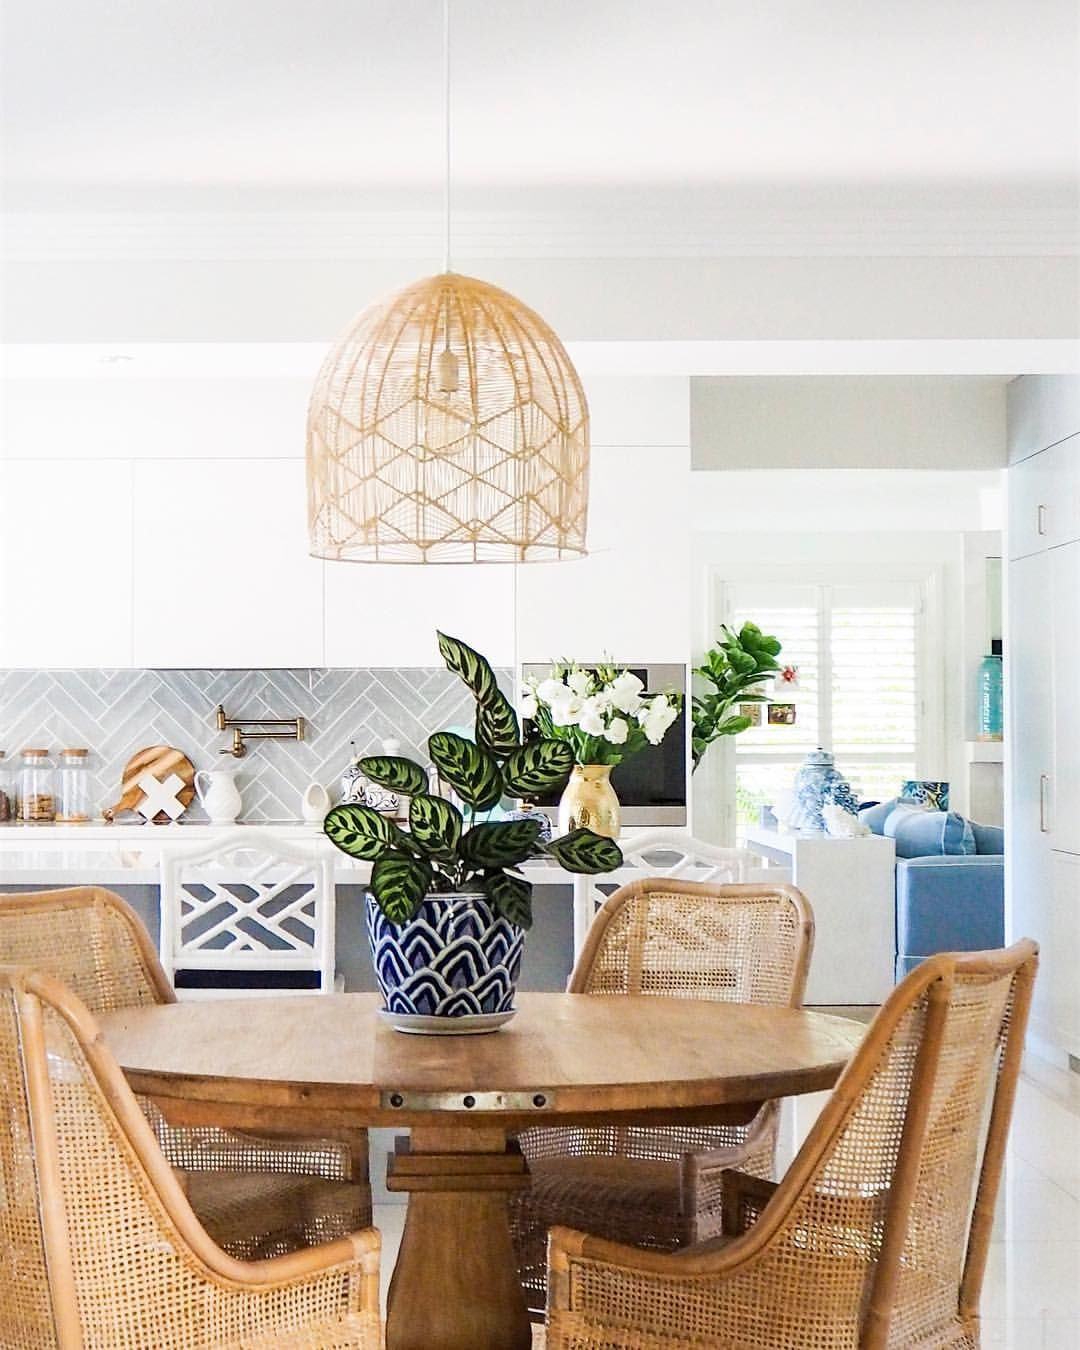 Kitchen Without Furniture: 33 A Collection Of Creative Dining Room Ideas [Beautiful